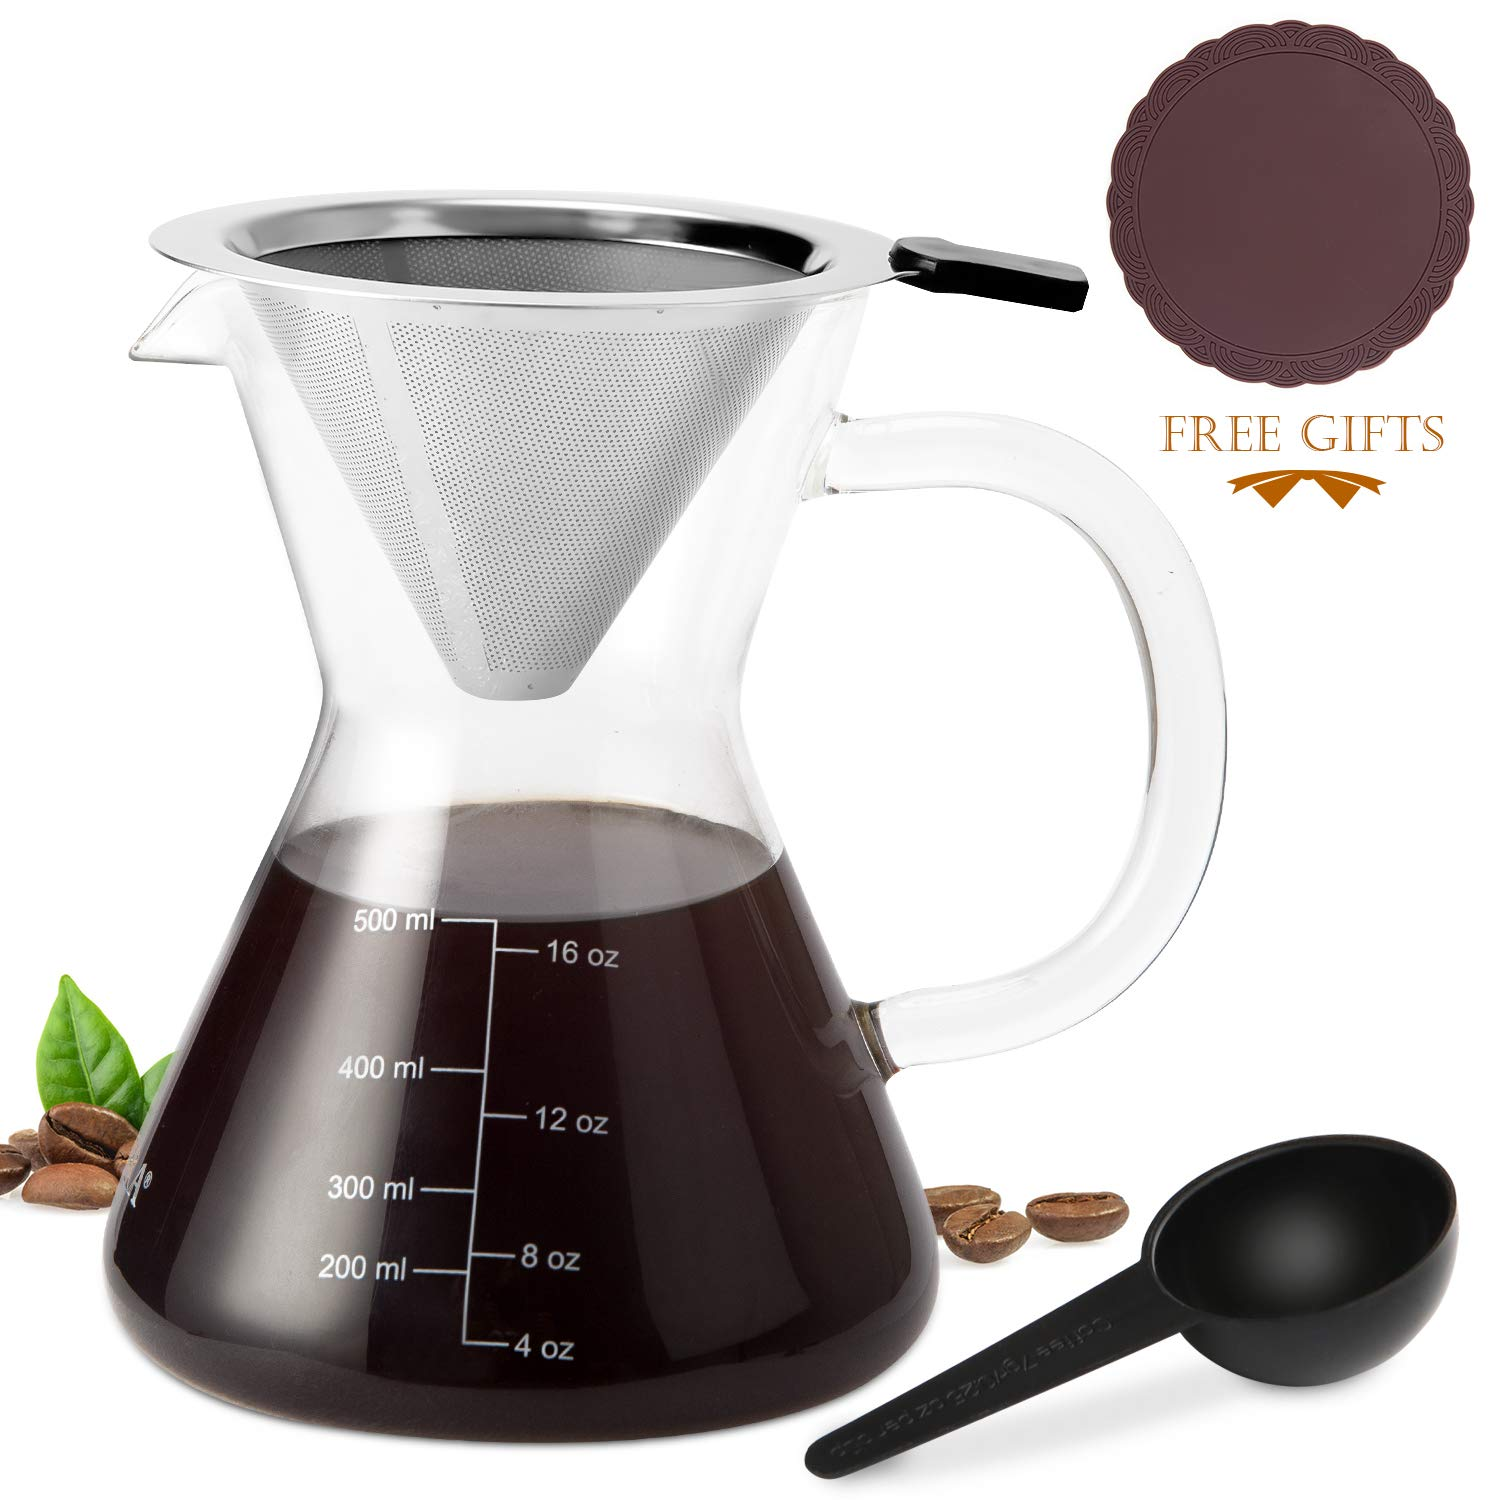 Secura Pour Over Coffee Dripper, 17 oz, Glass Coffeemaker with Stainless Steel Filter by Secura